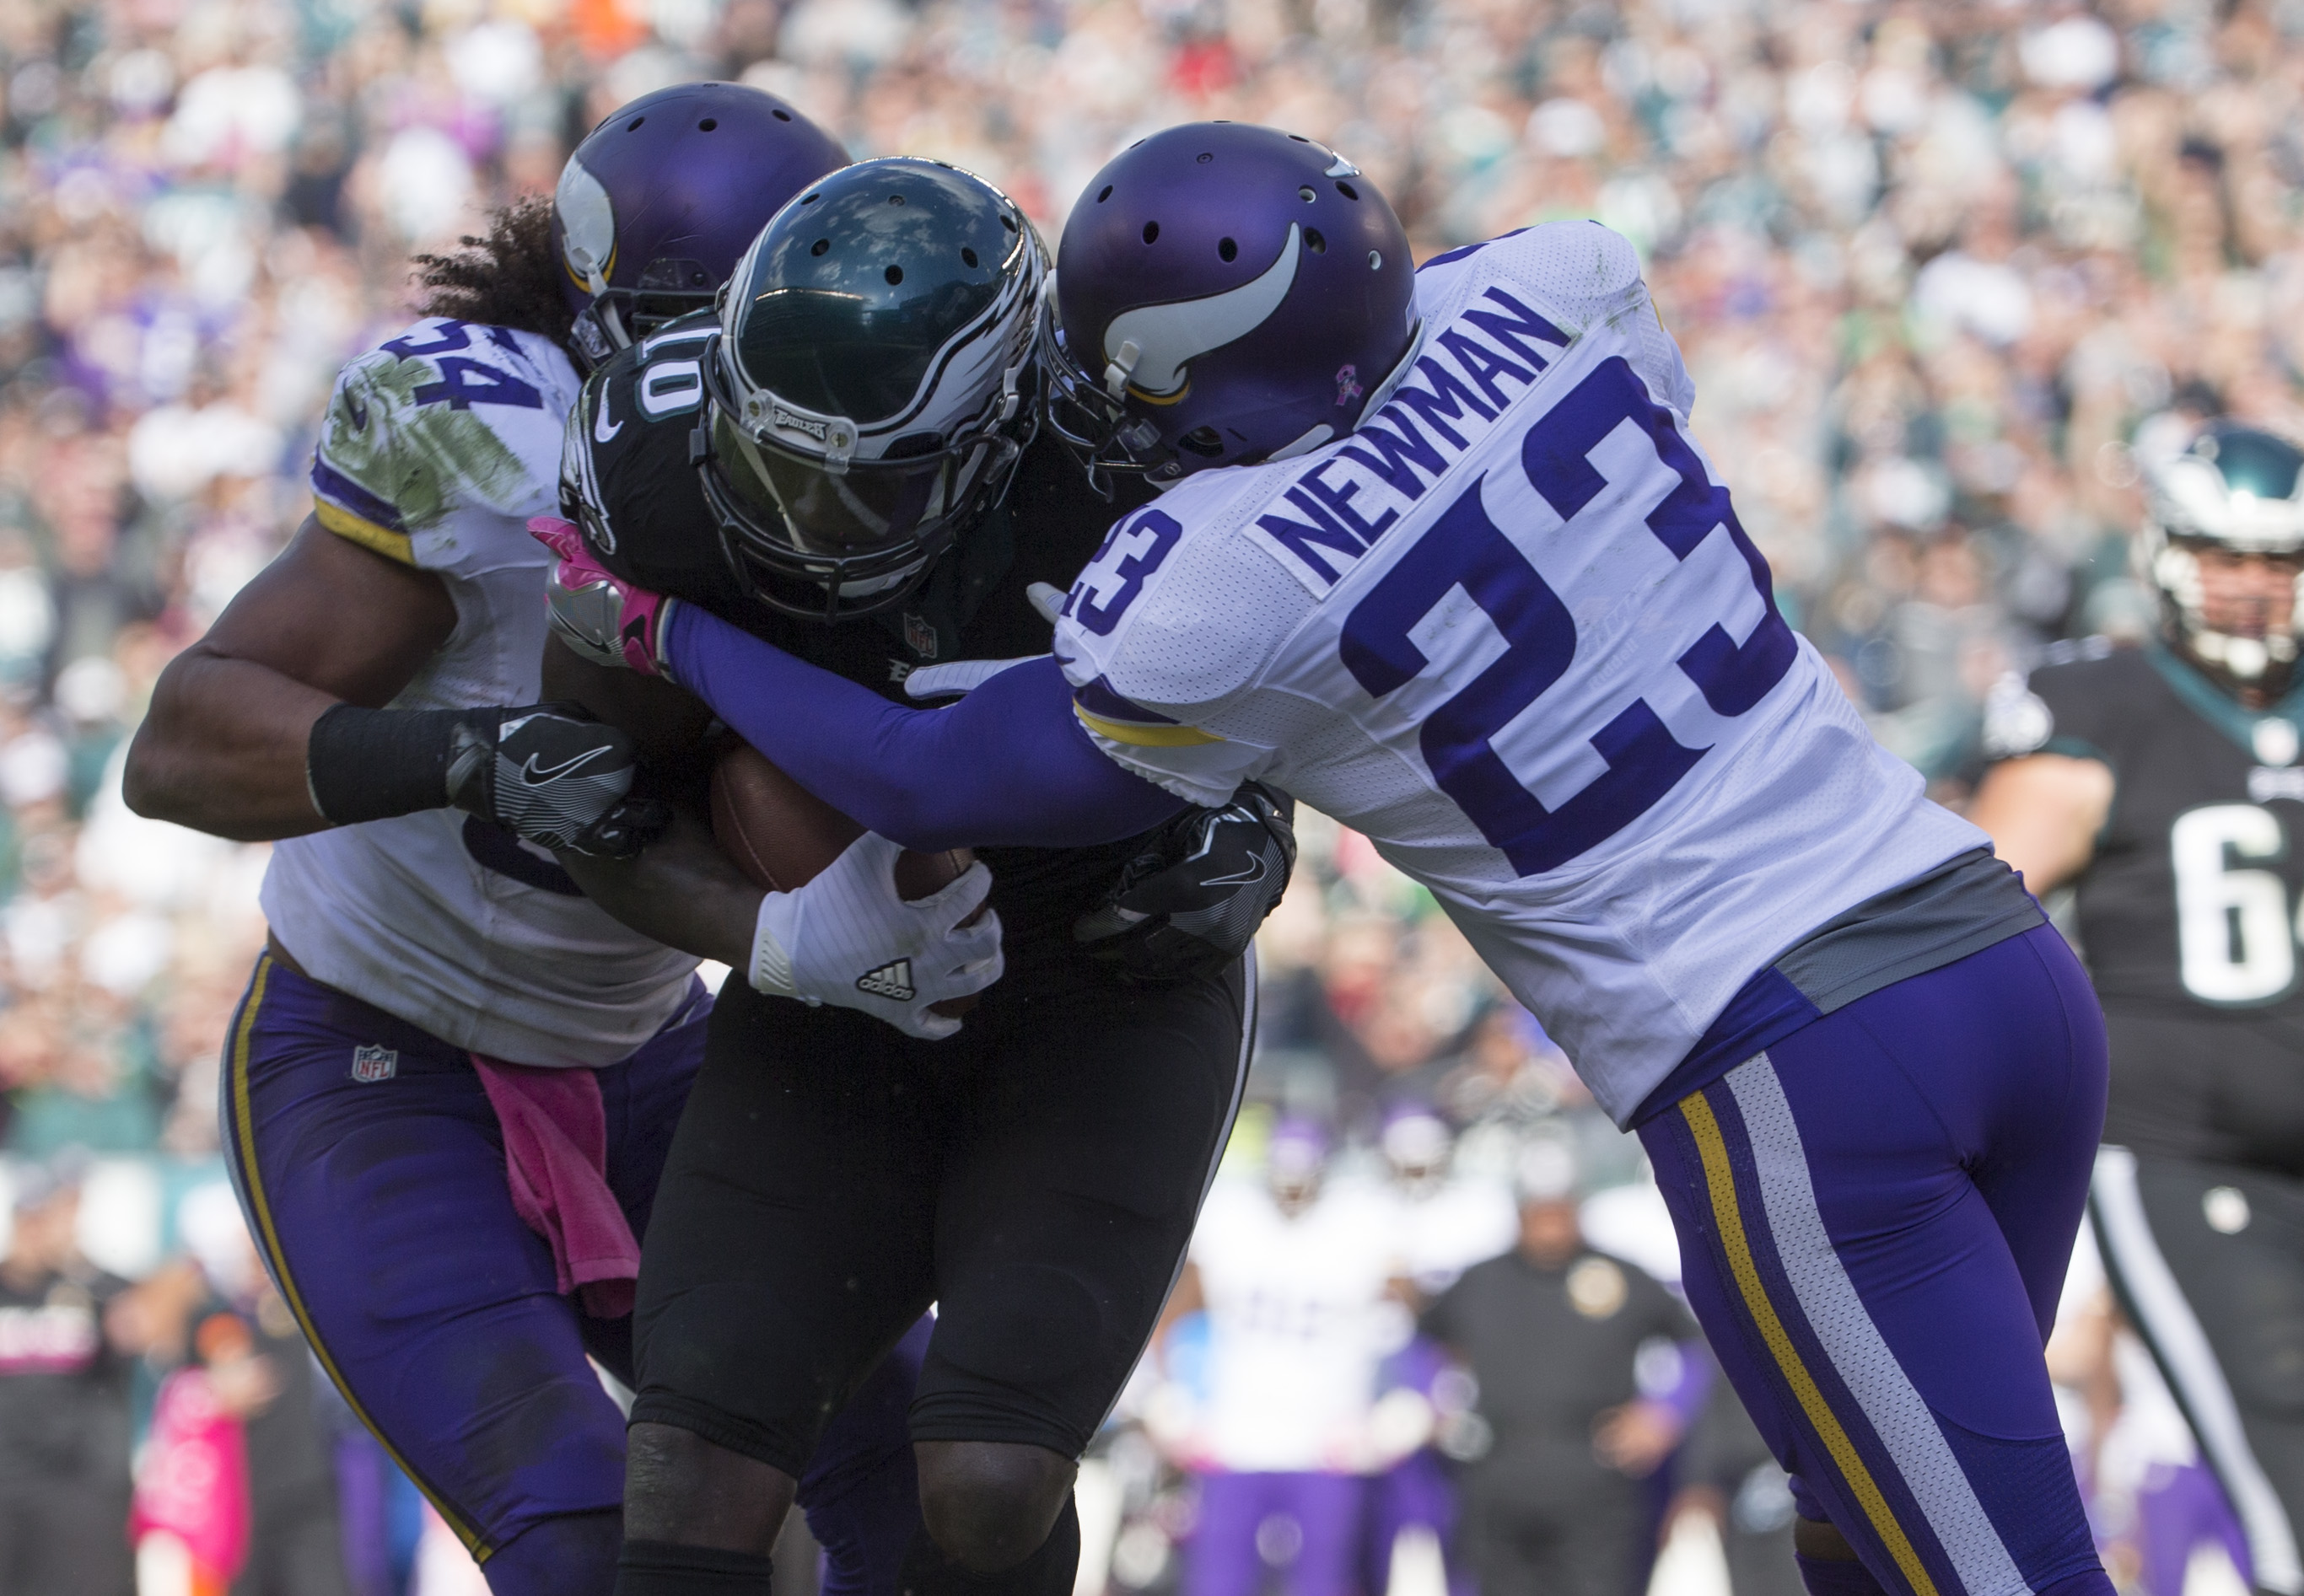 Conference Championship Ups and Downs: Minnesota Vikings vs Eagles